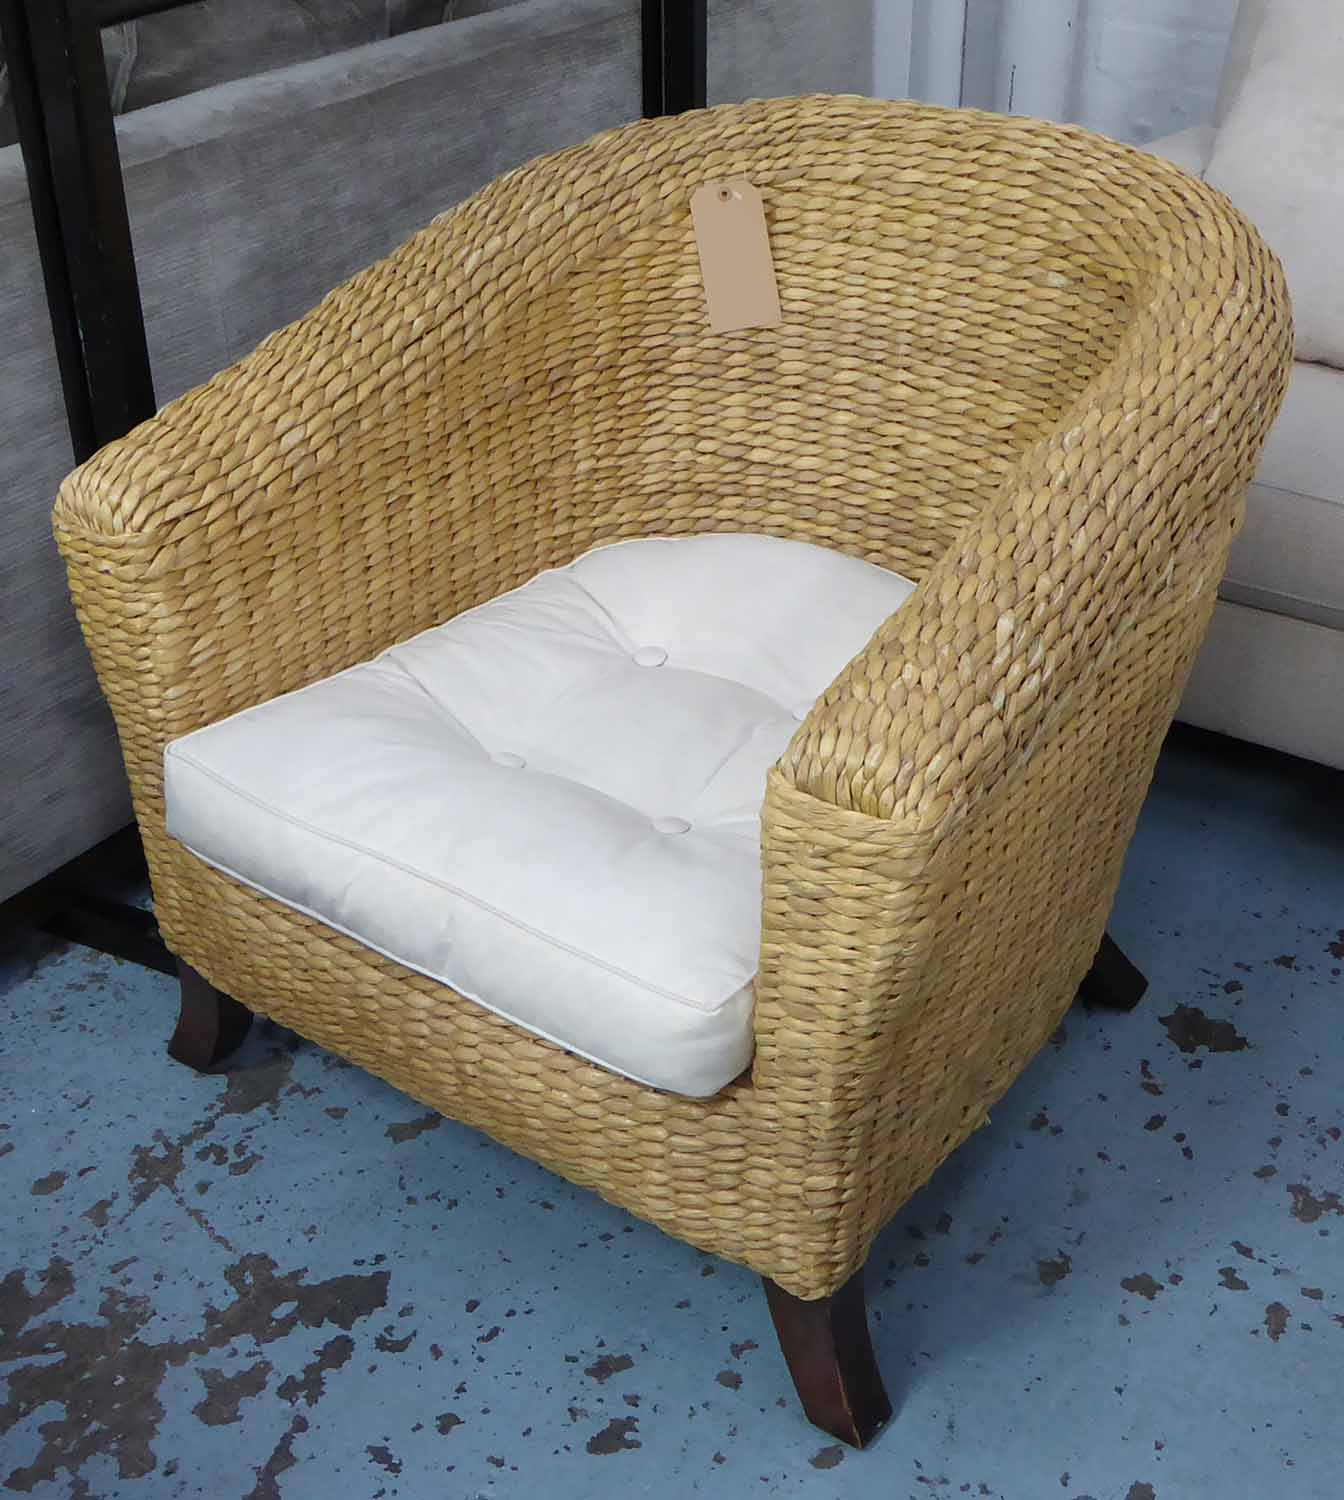 CONSERVATORY WICKER SOFA, rounded back on splayed legs, with cushion and chair to match. - Image 2 of 2